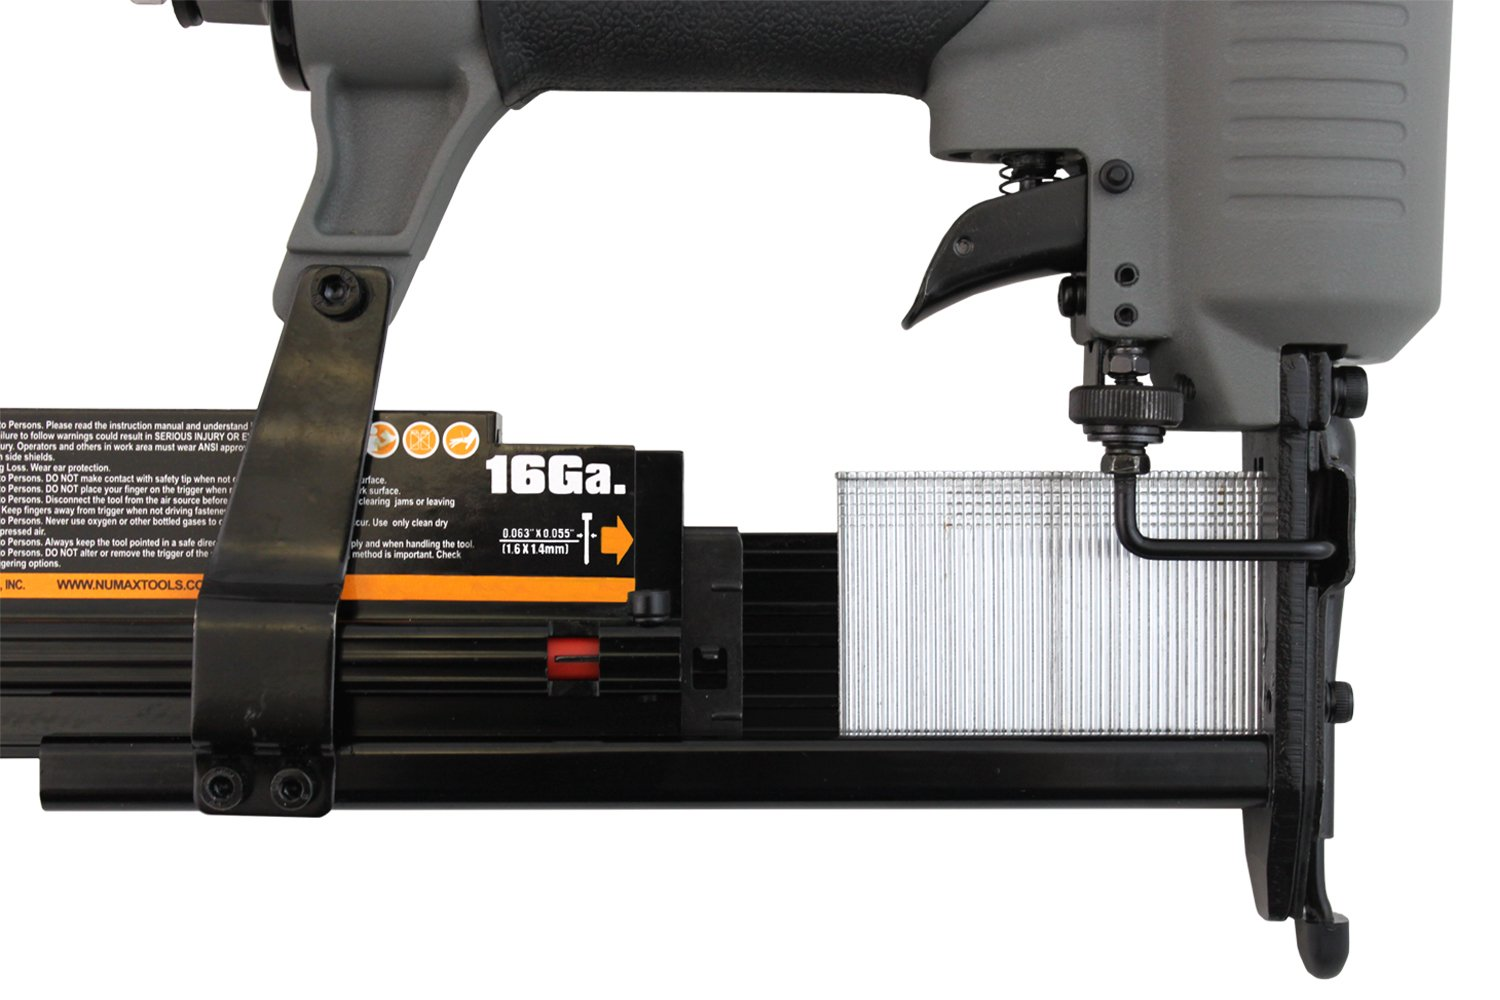 NuMax SL31 18 & 16 Gauge Pneumatic 3-in-1 Nailer & Stapler, Gray & Black by NuMax (Image #4)